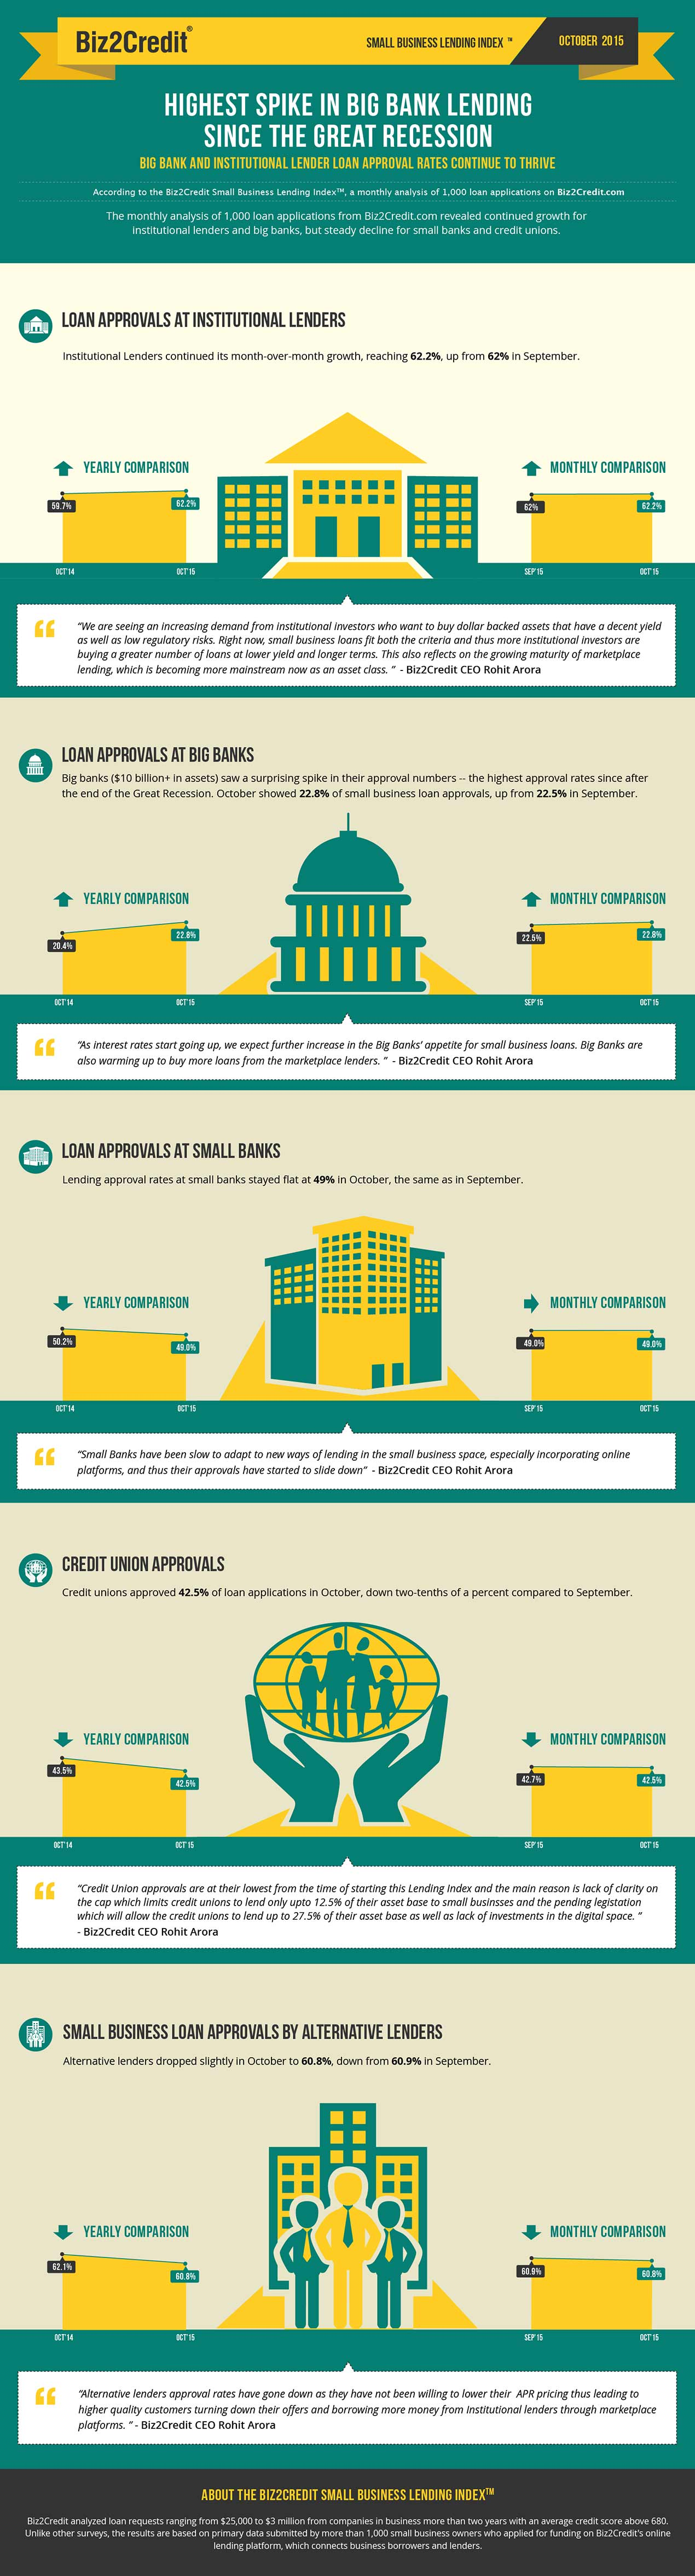 Oct 15 Lending Index Infographic